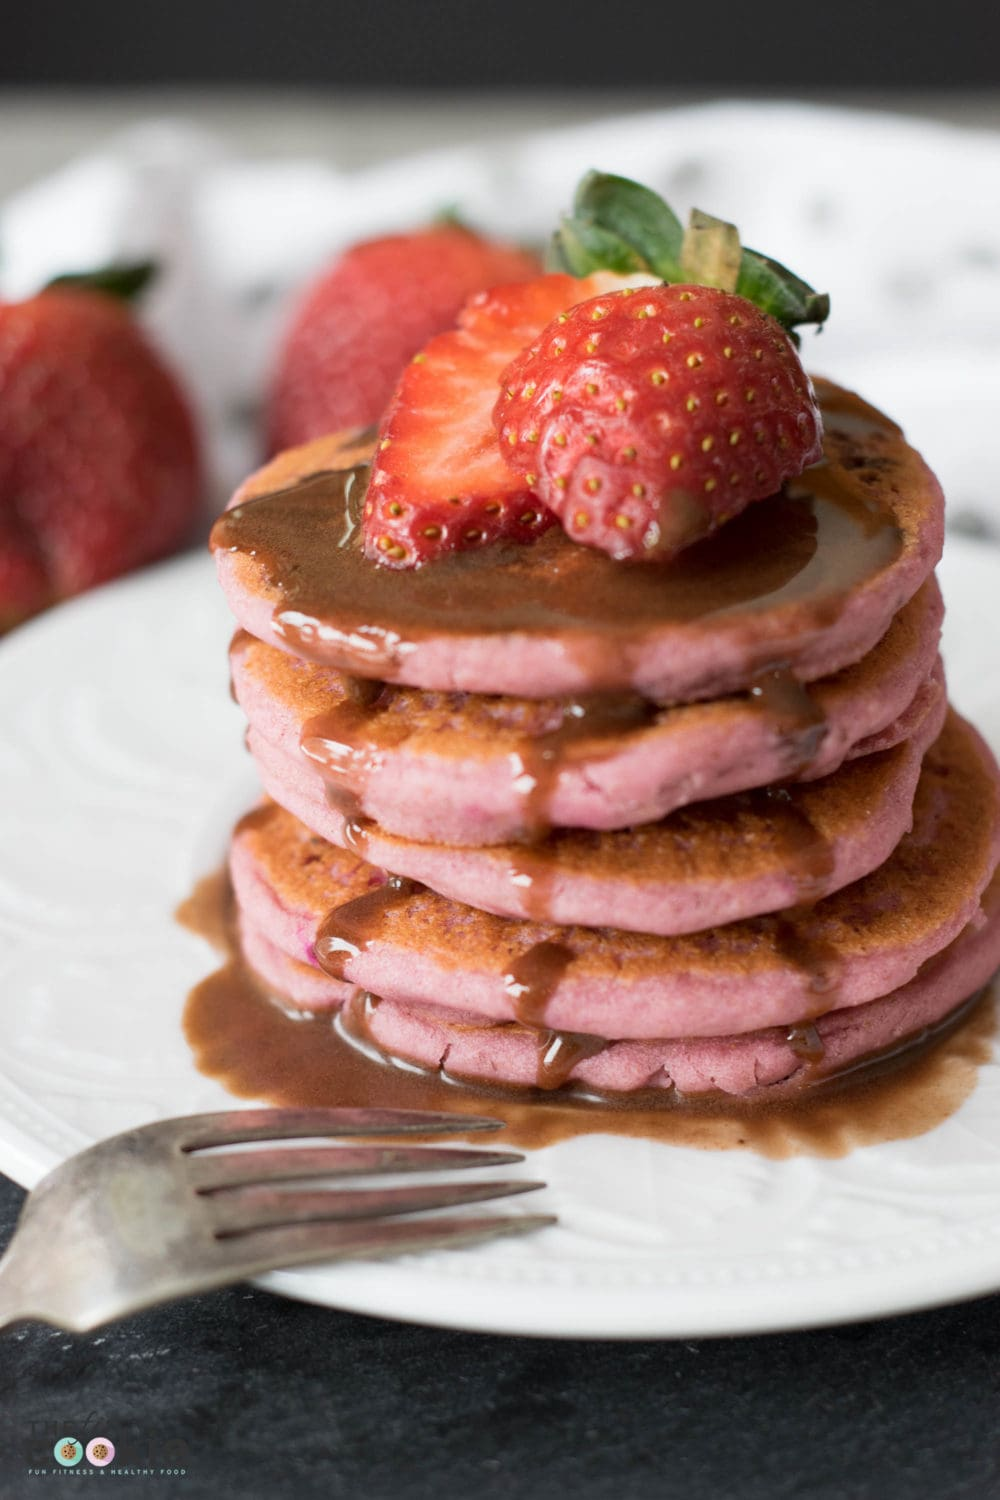 Strawberry Chocolate Pancakes naturally colored - no fake red dyes! (#GlutenFree & #Vegan) - @TheFitCookie #foodbloggenius